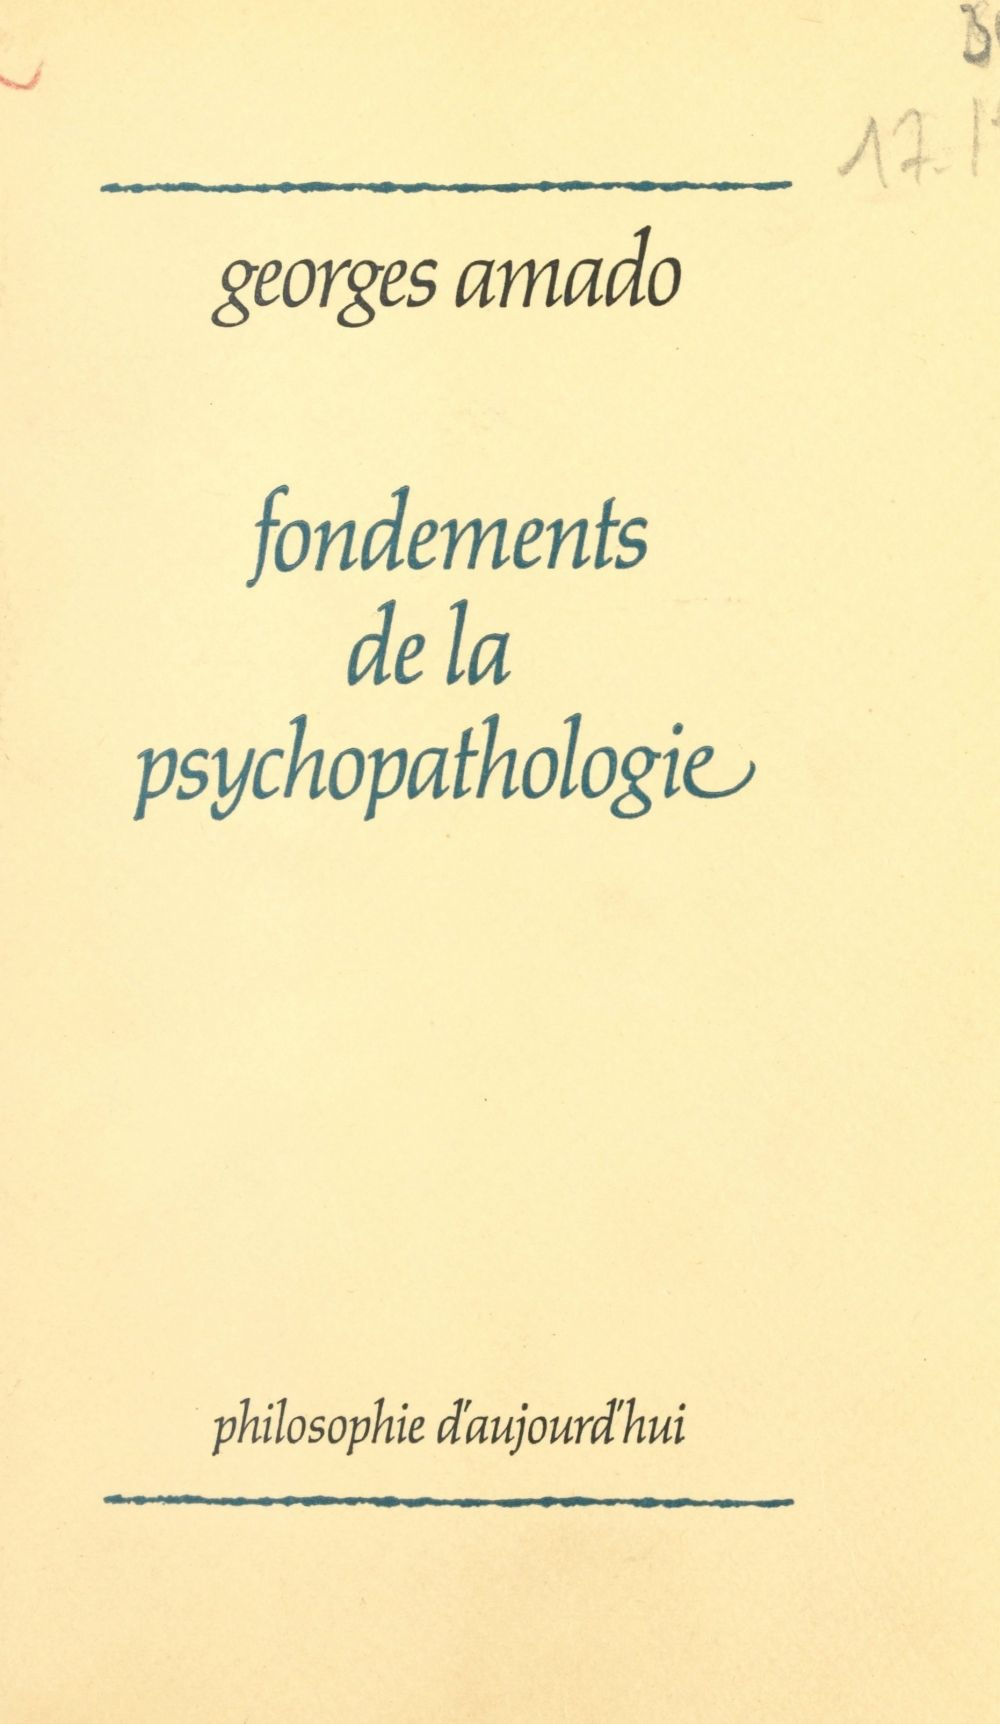 Fondements de la psychopathologie